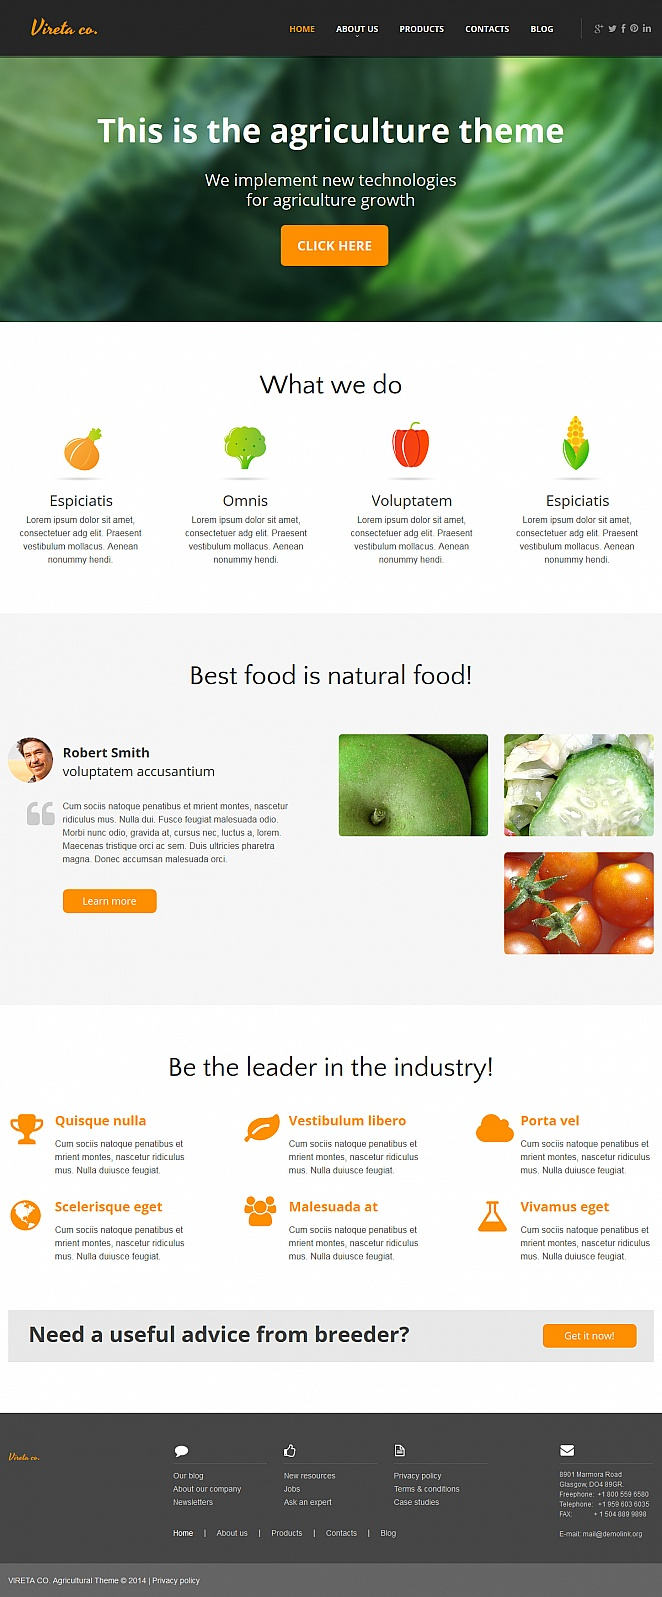 Agriculture Website Template with Content Intensive Layout - image